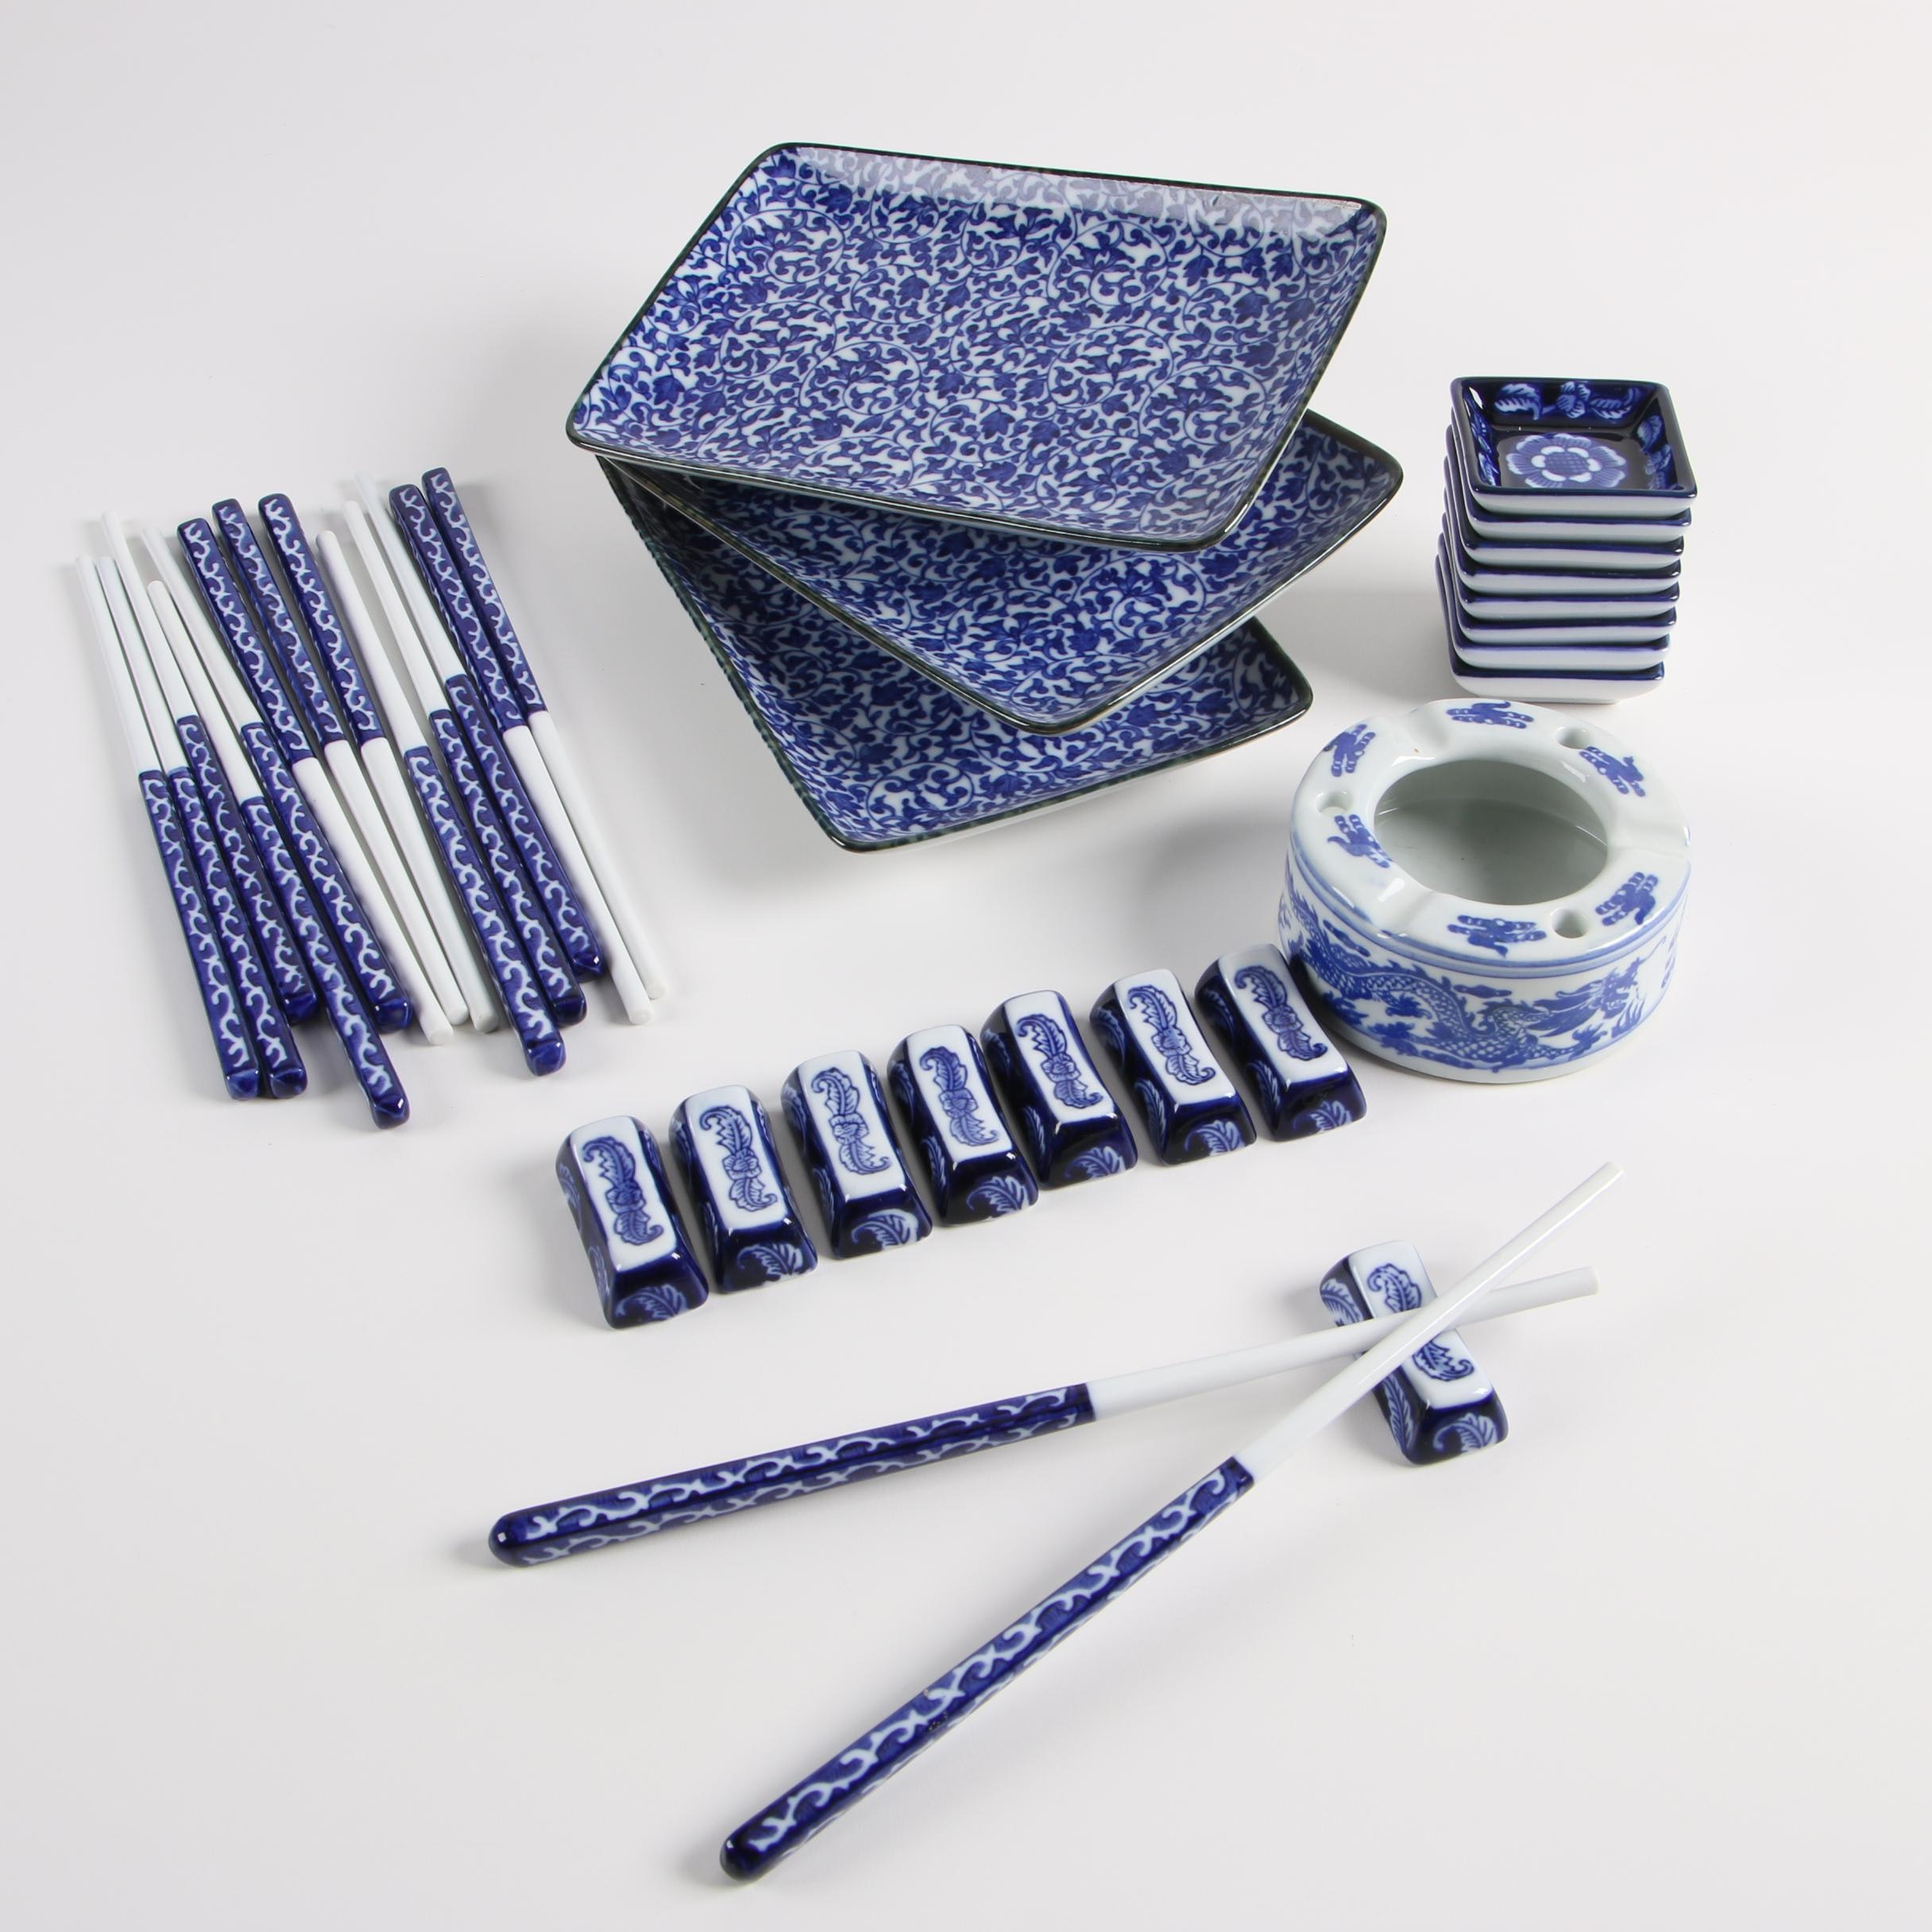 Japanese Blue and White Porcelain Tableware including Sousaku